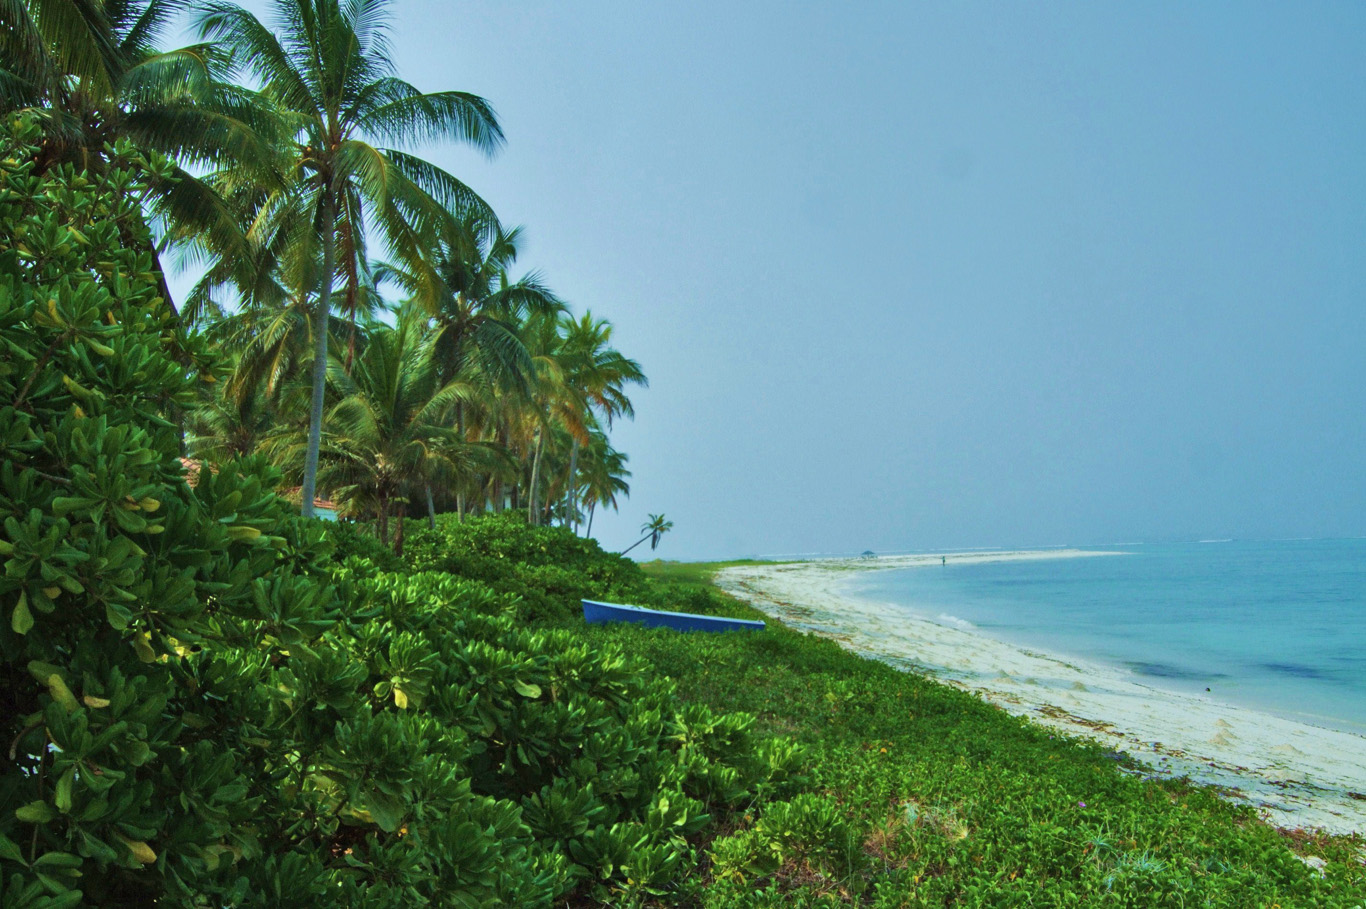 Miles of unspoiled paradise